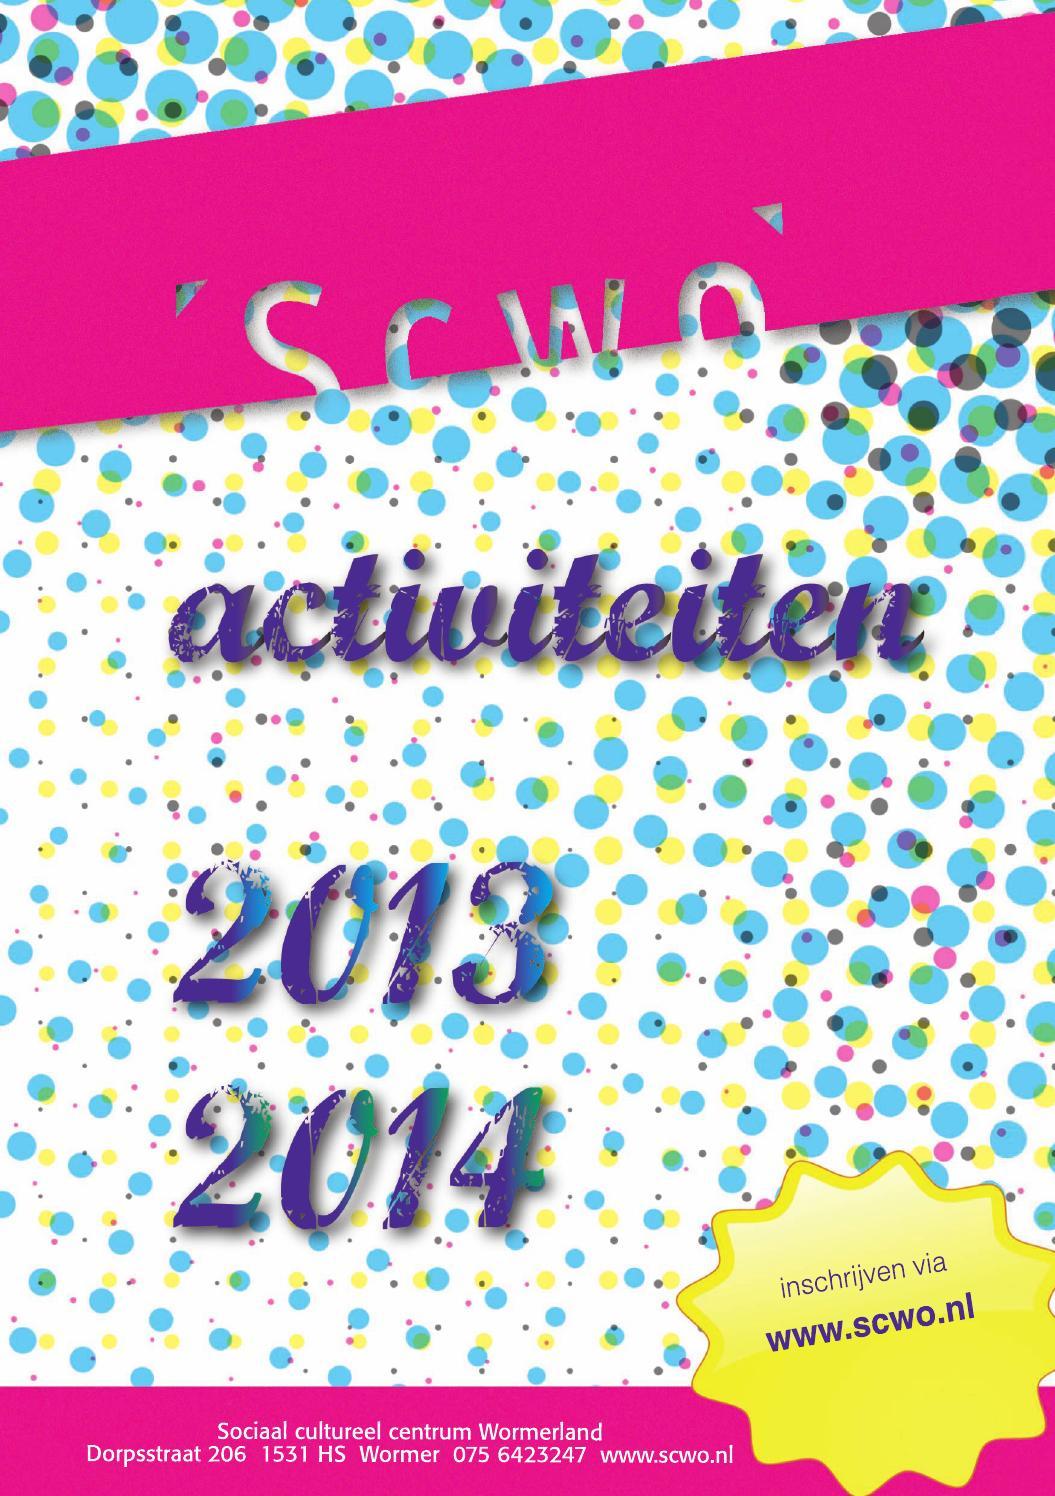 Zwembad T Zwet Wormer Scwo 2013 2014 By Maypress Online Library Hosted By Your